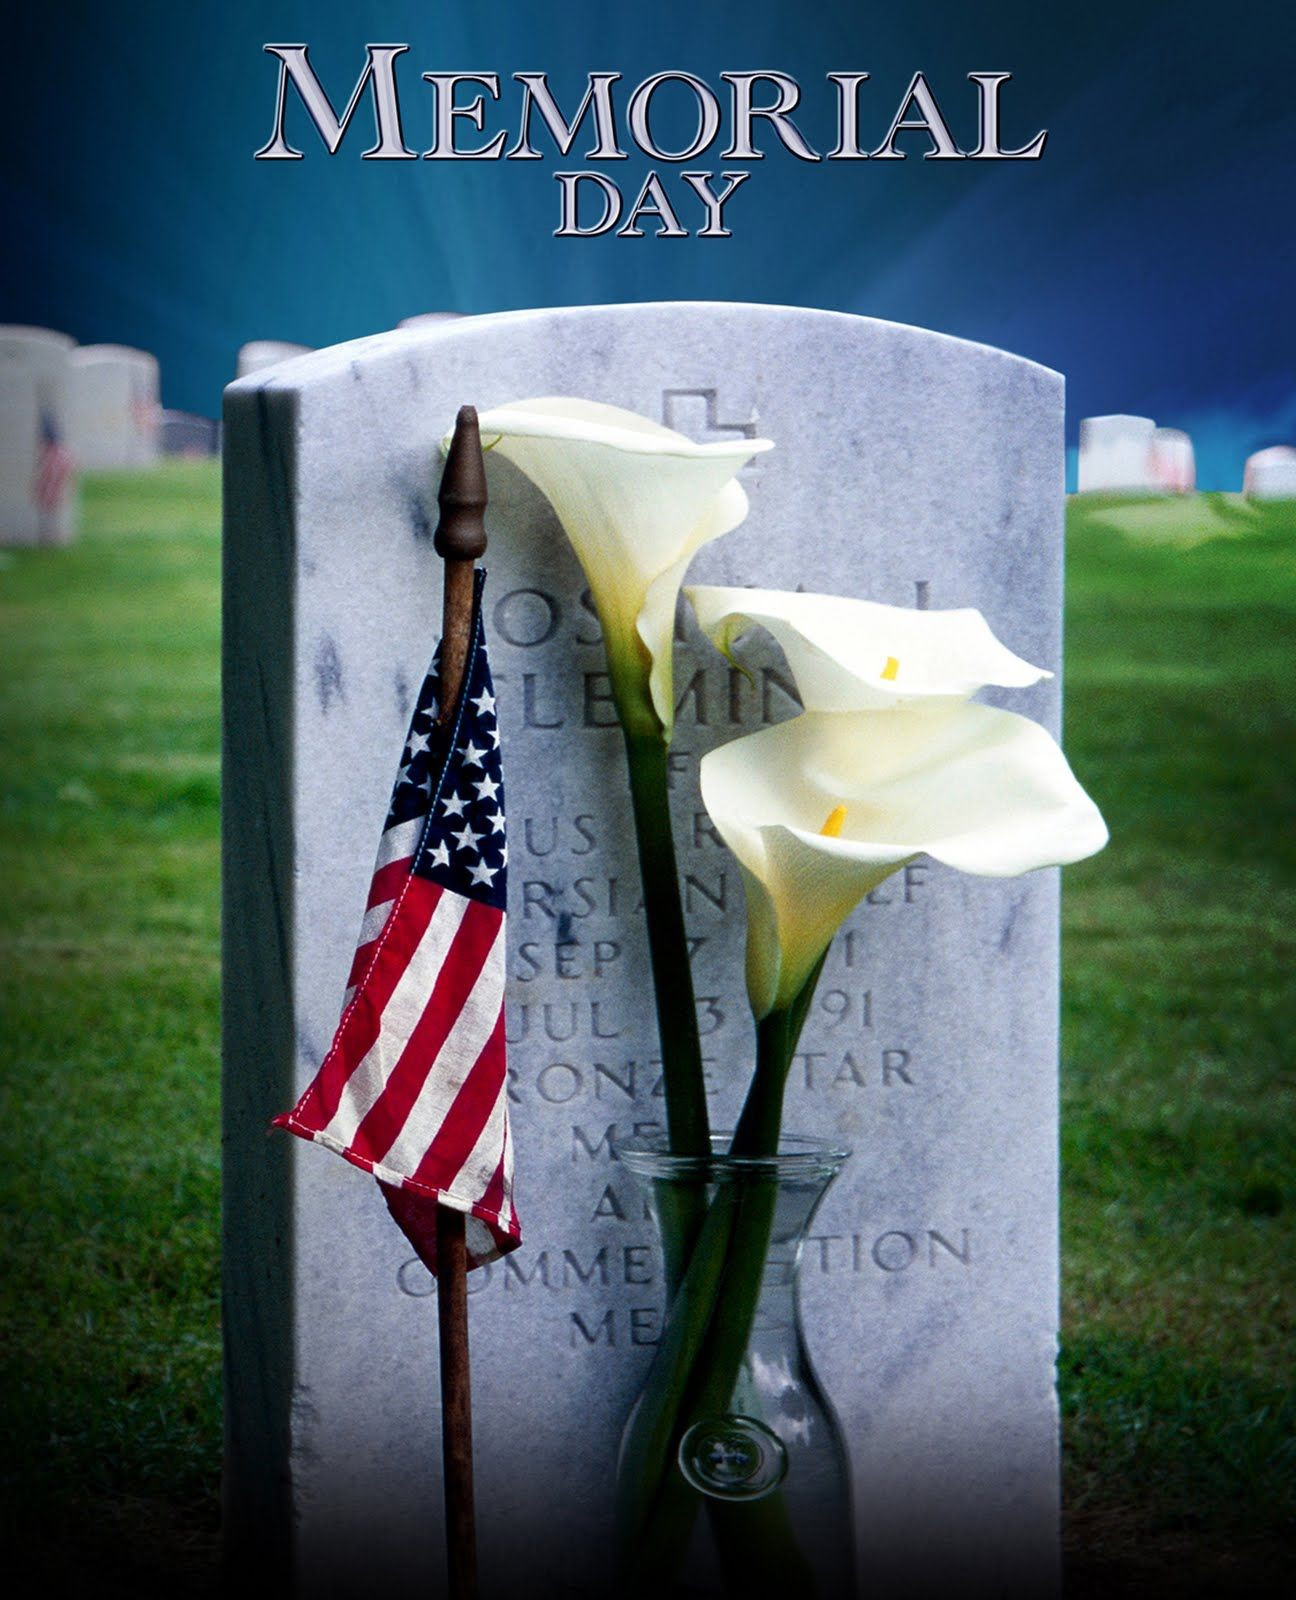 Pictures Images On Pinterest: Memorial Day Pictures, Photos, And Images For Facebook